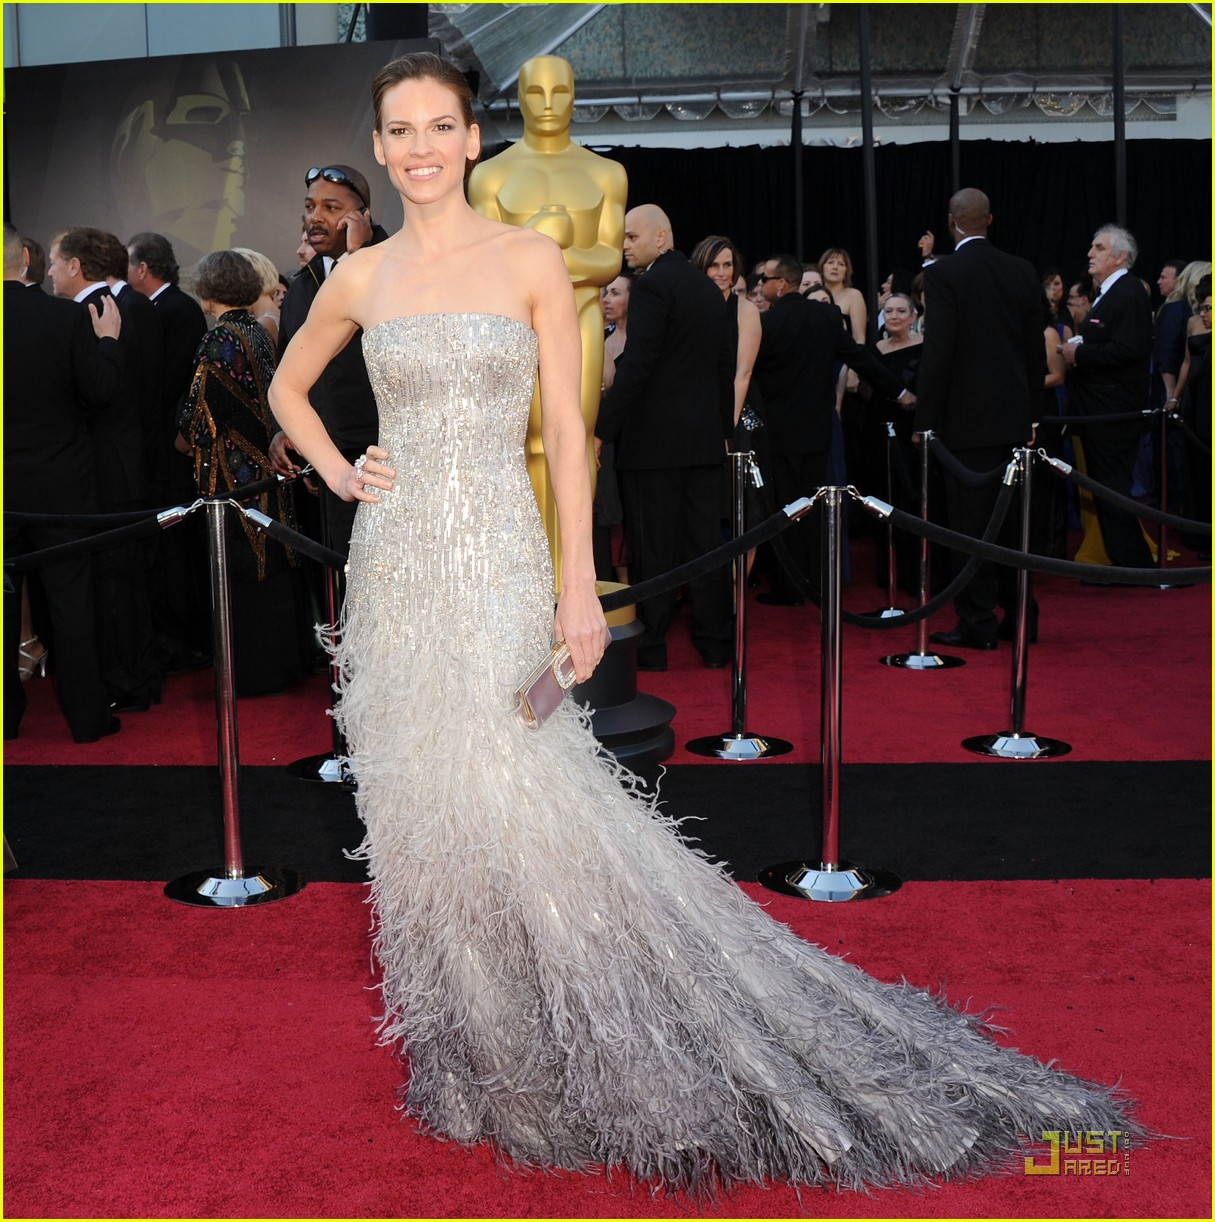 Best & Worst dress for 2011 Oscars | Fashion in the Urban ...  Best & Worst dr...